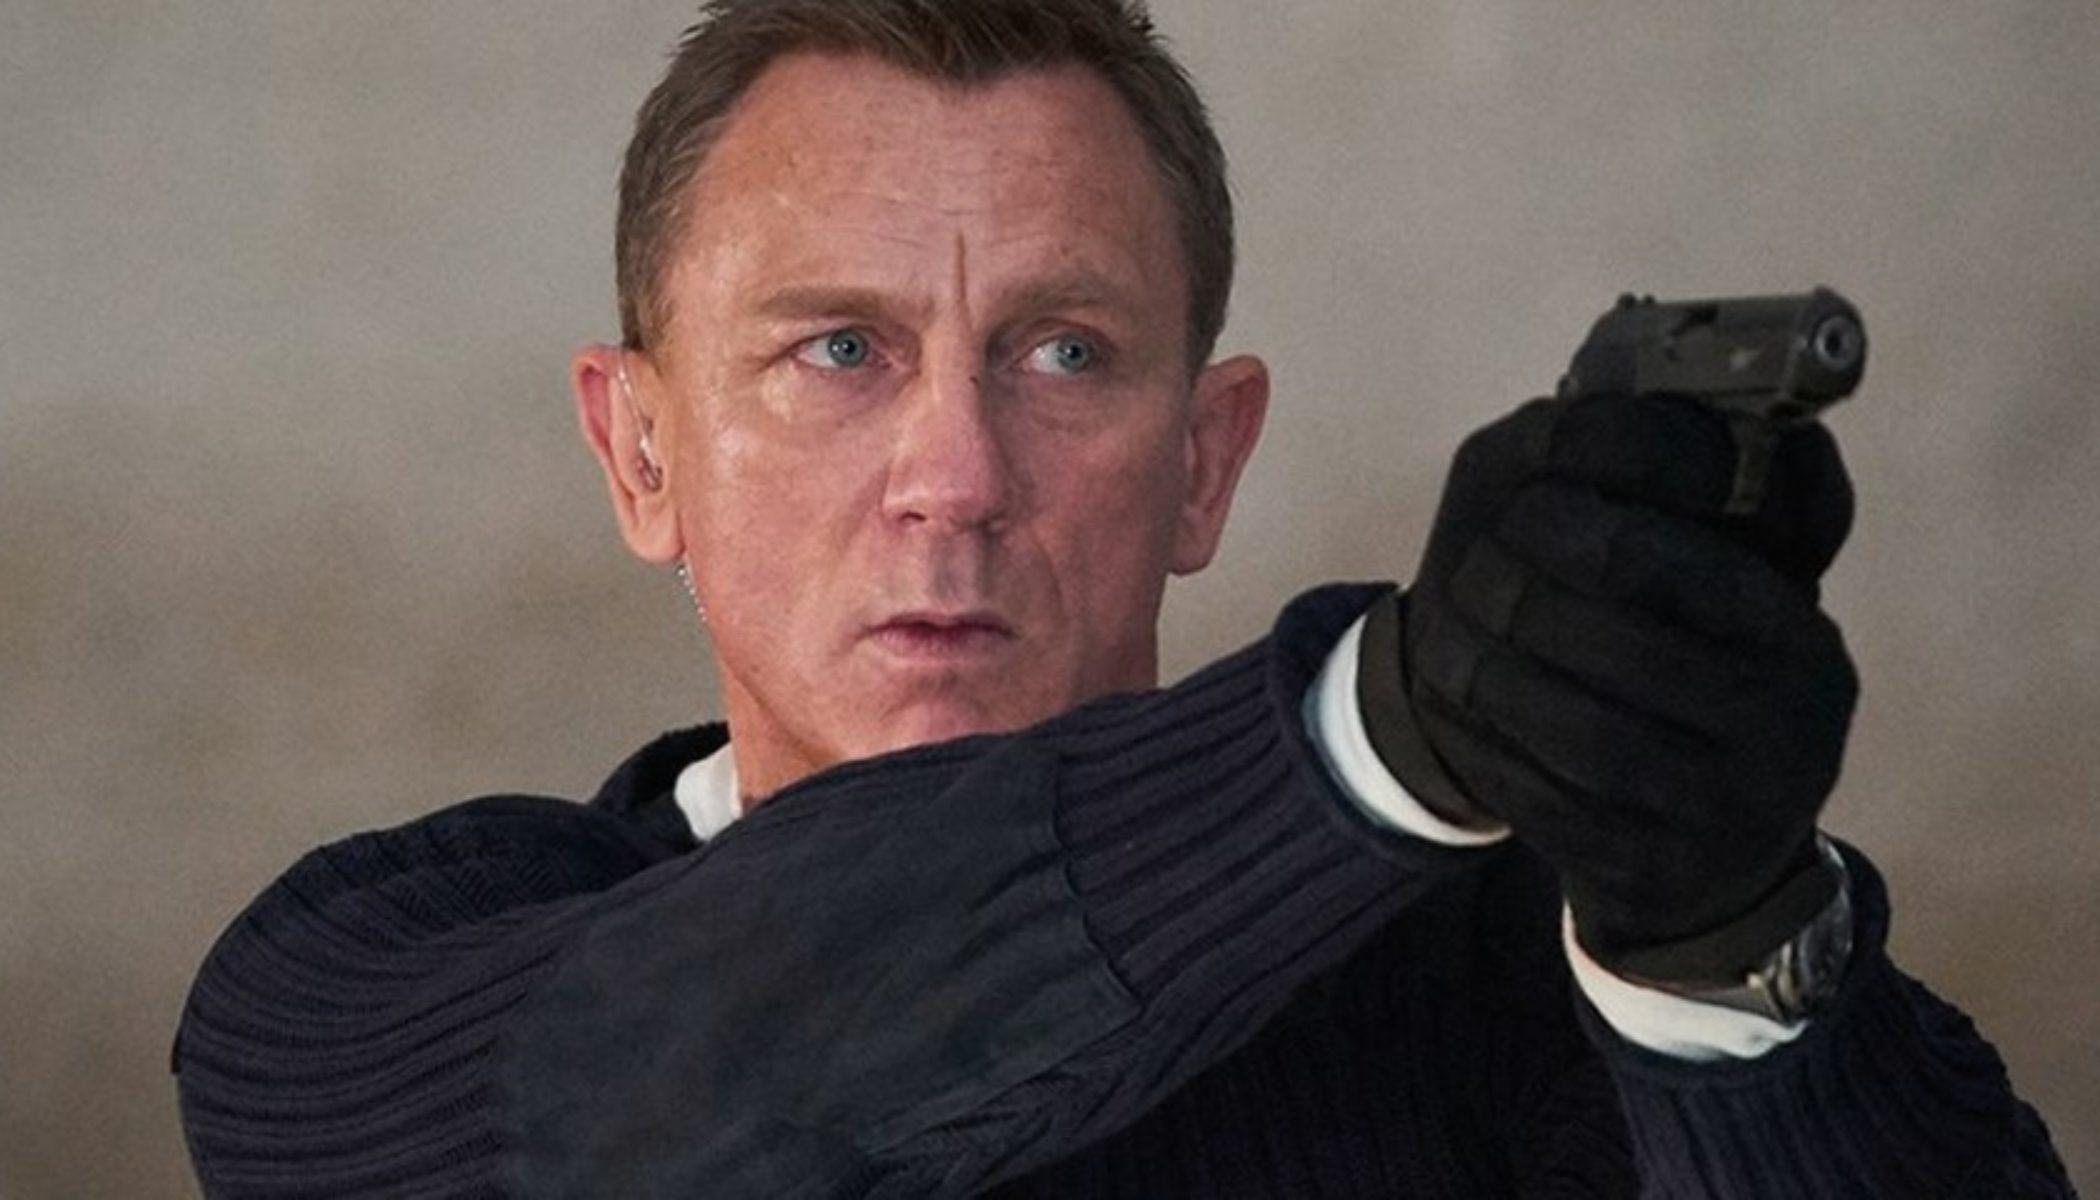 James Bond, No time to die : Time to cry